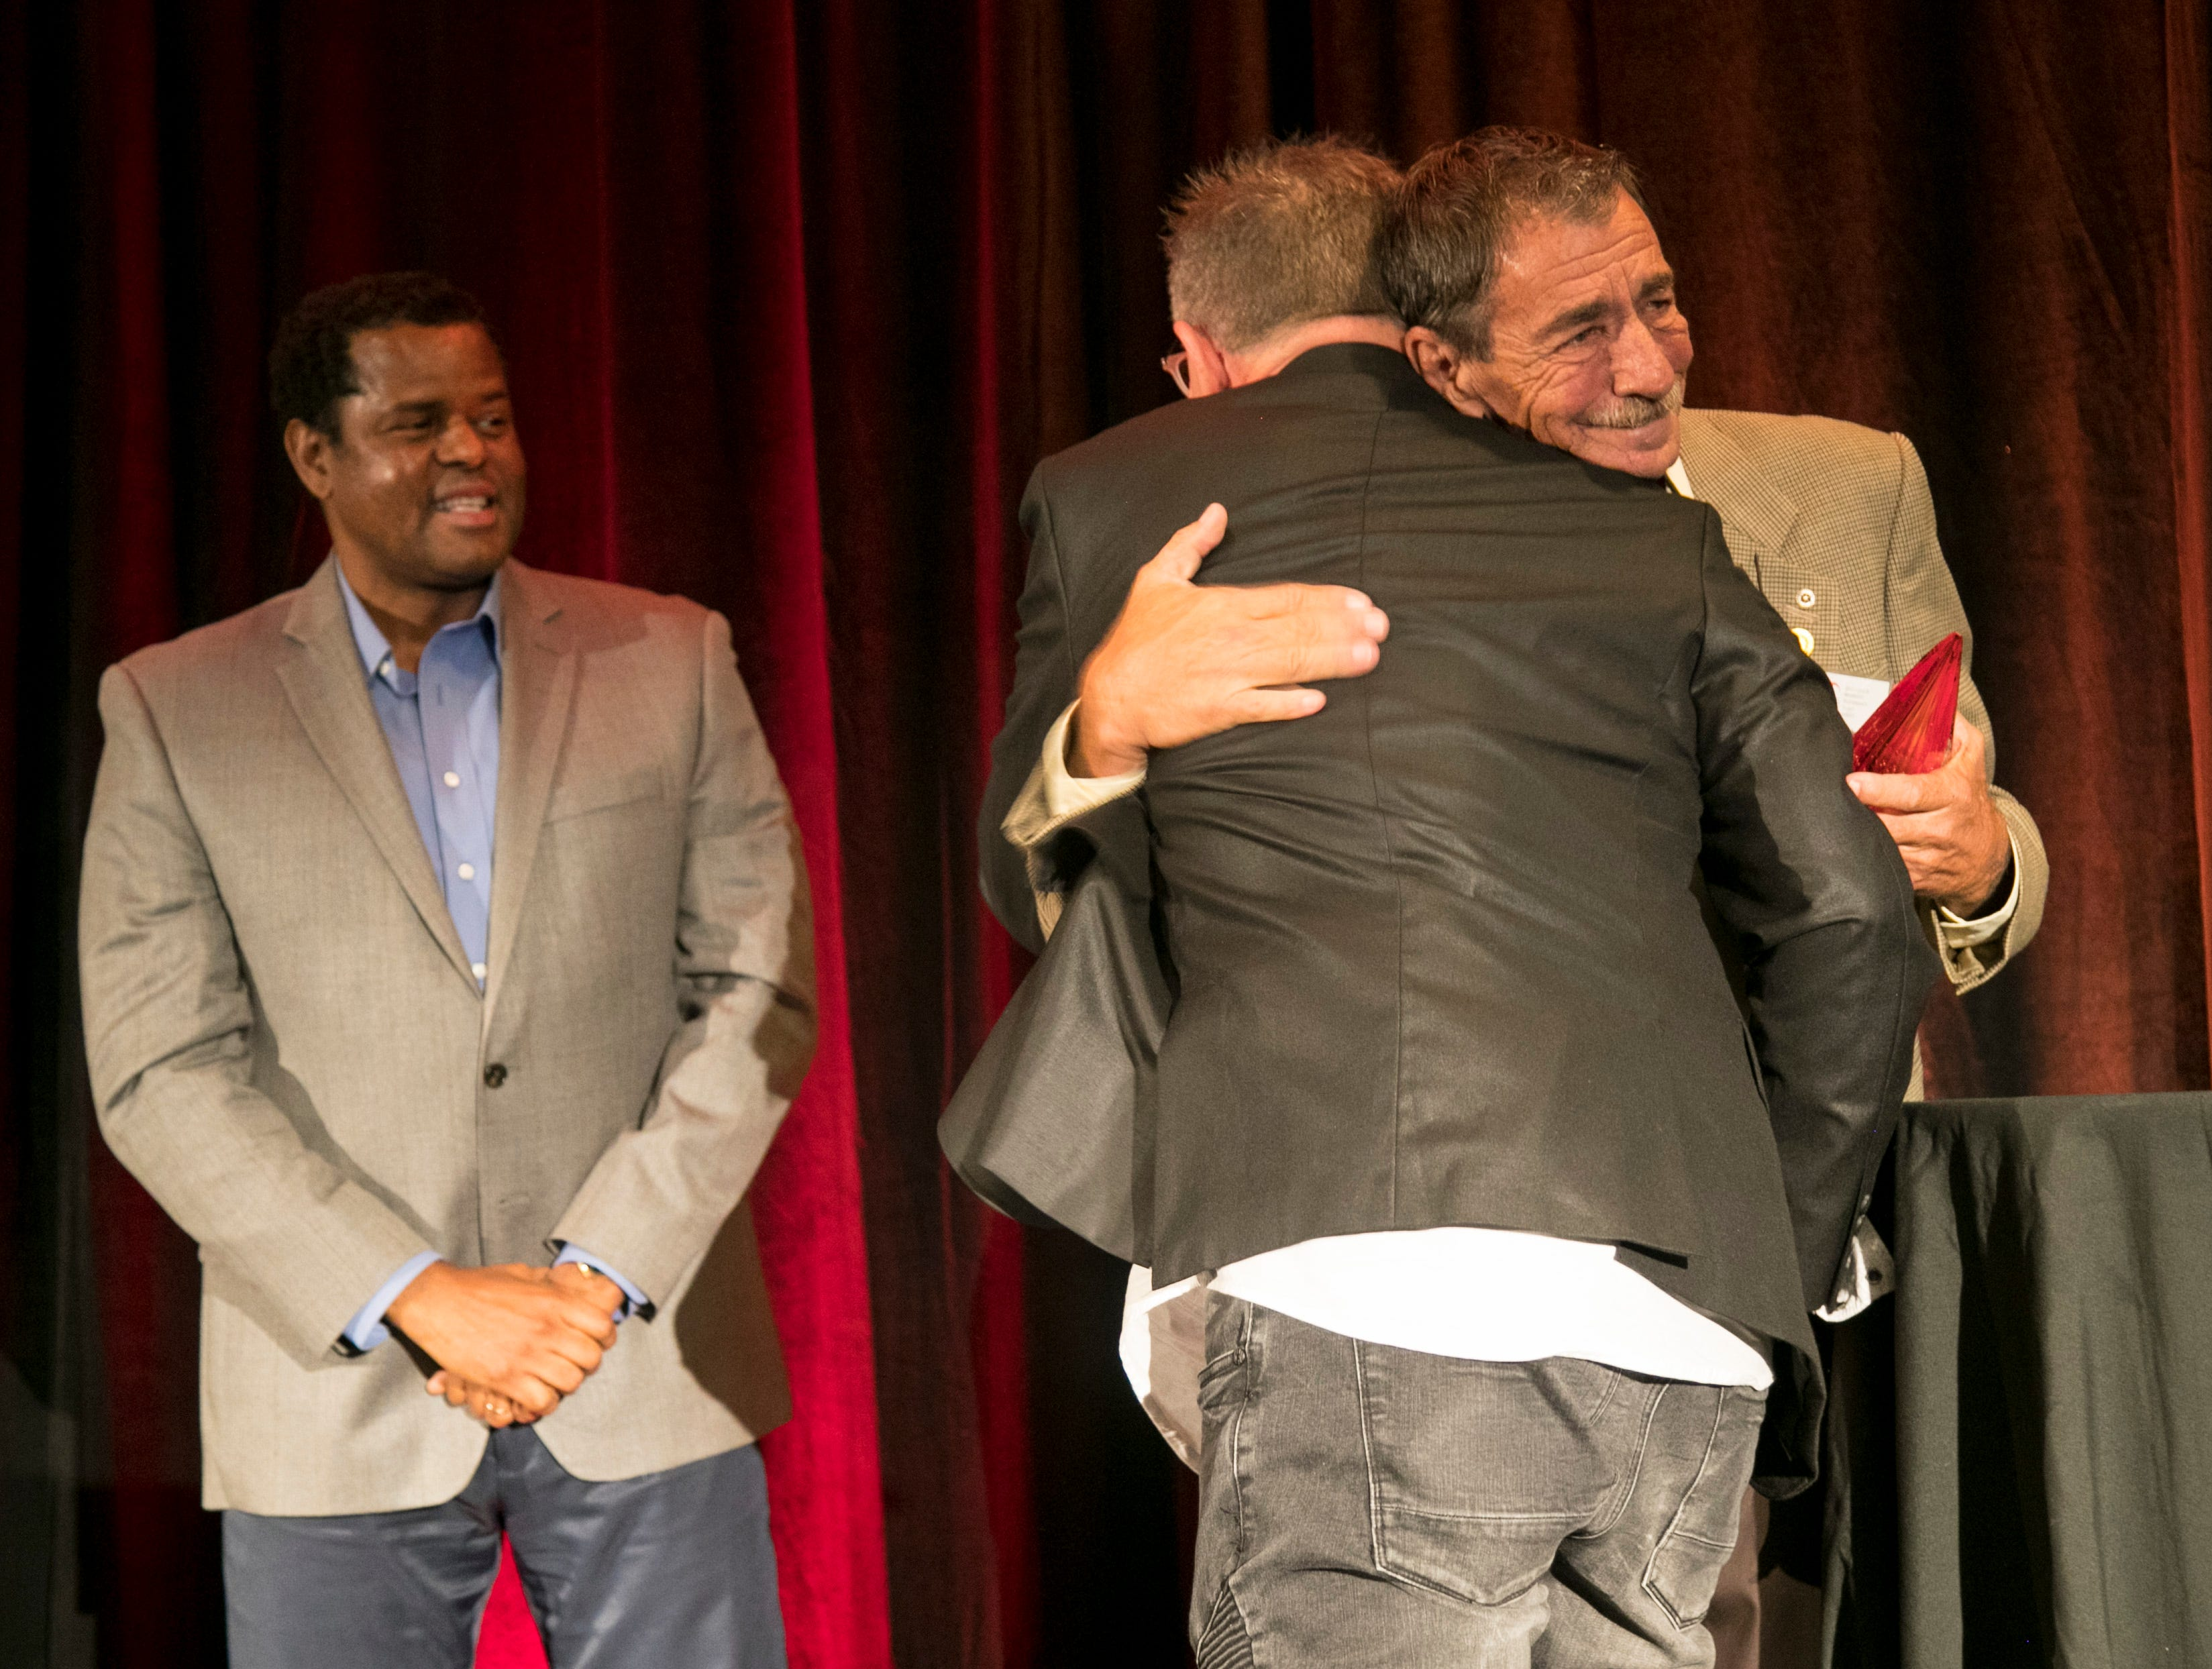 Elmer Tabor, right, hugs Dennis Gingerich, center, after Ginegrich won the 2018 Elmer Tabor Generosity Award at the Excellence in Nonprofit Performance Yearly Awards on Tuesday, October 9, 2018, in Fort Myers.